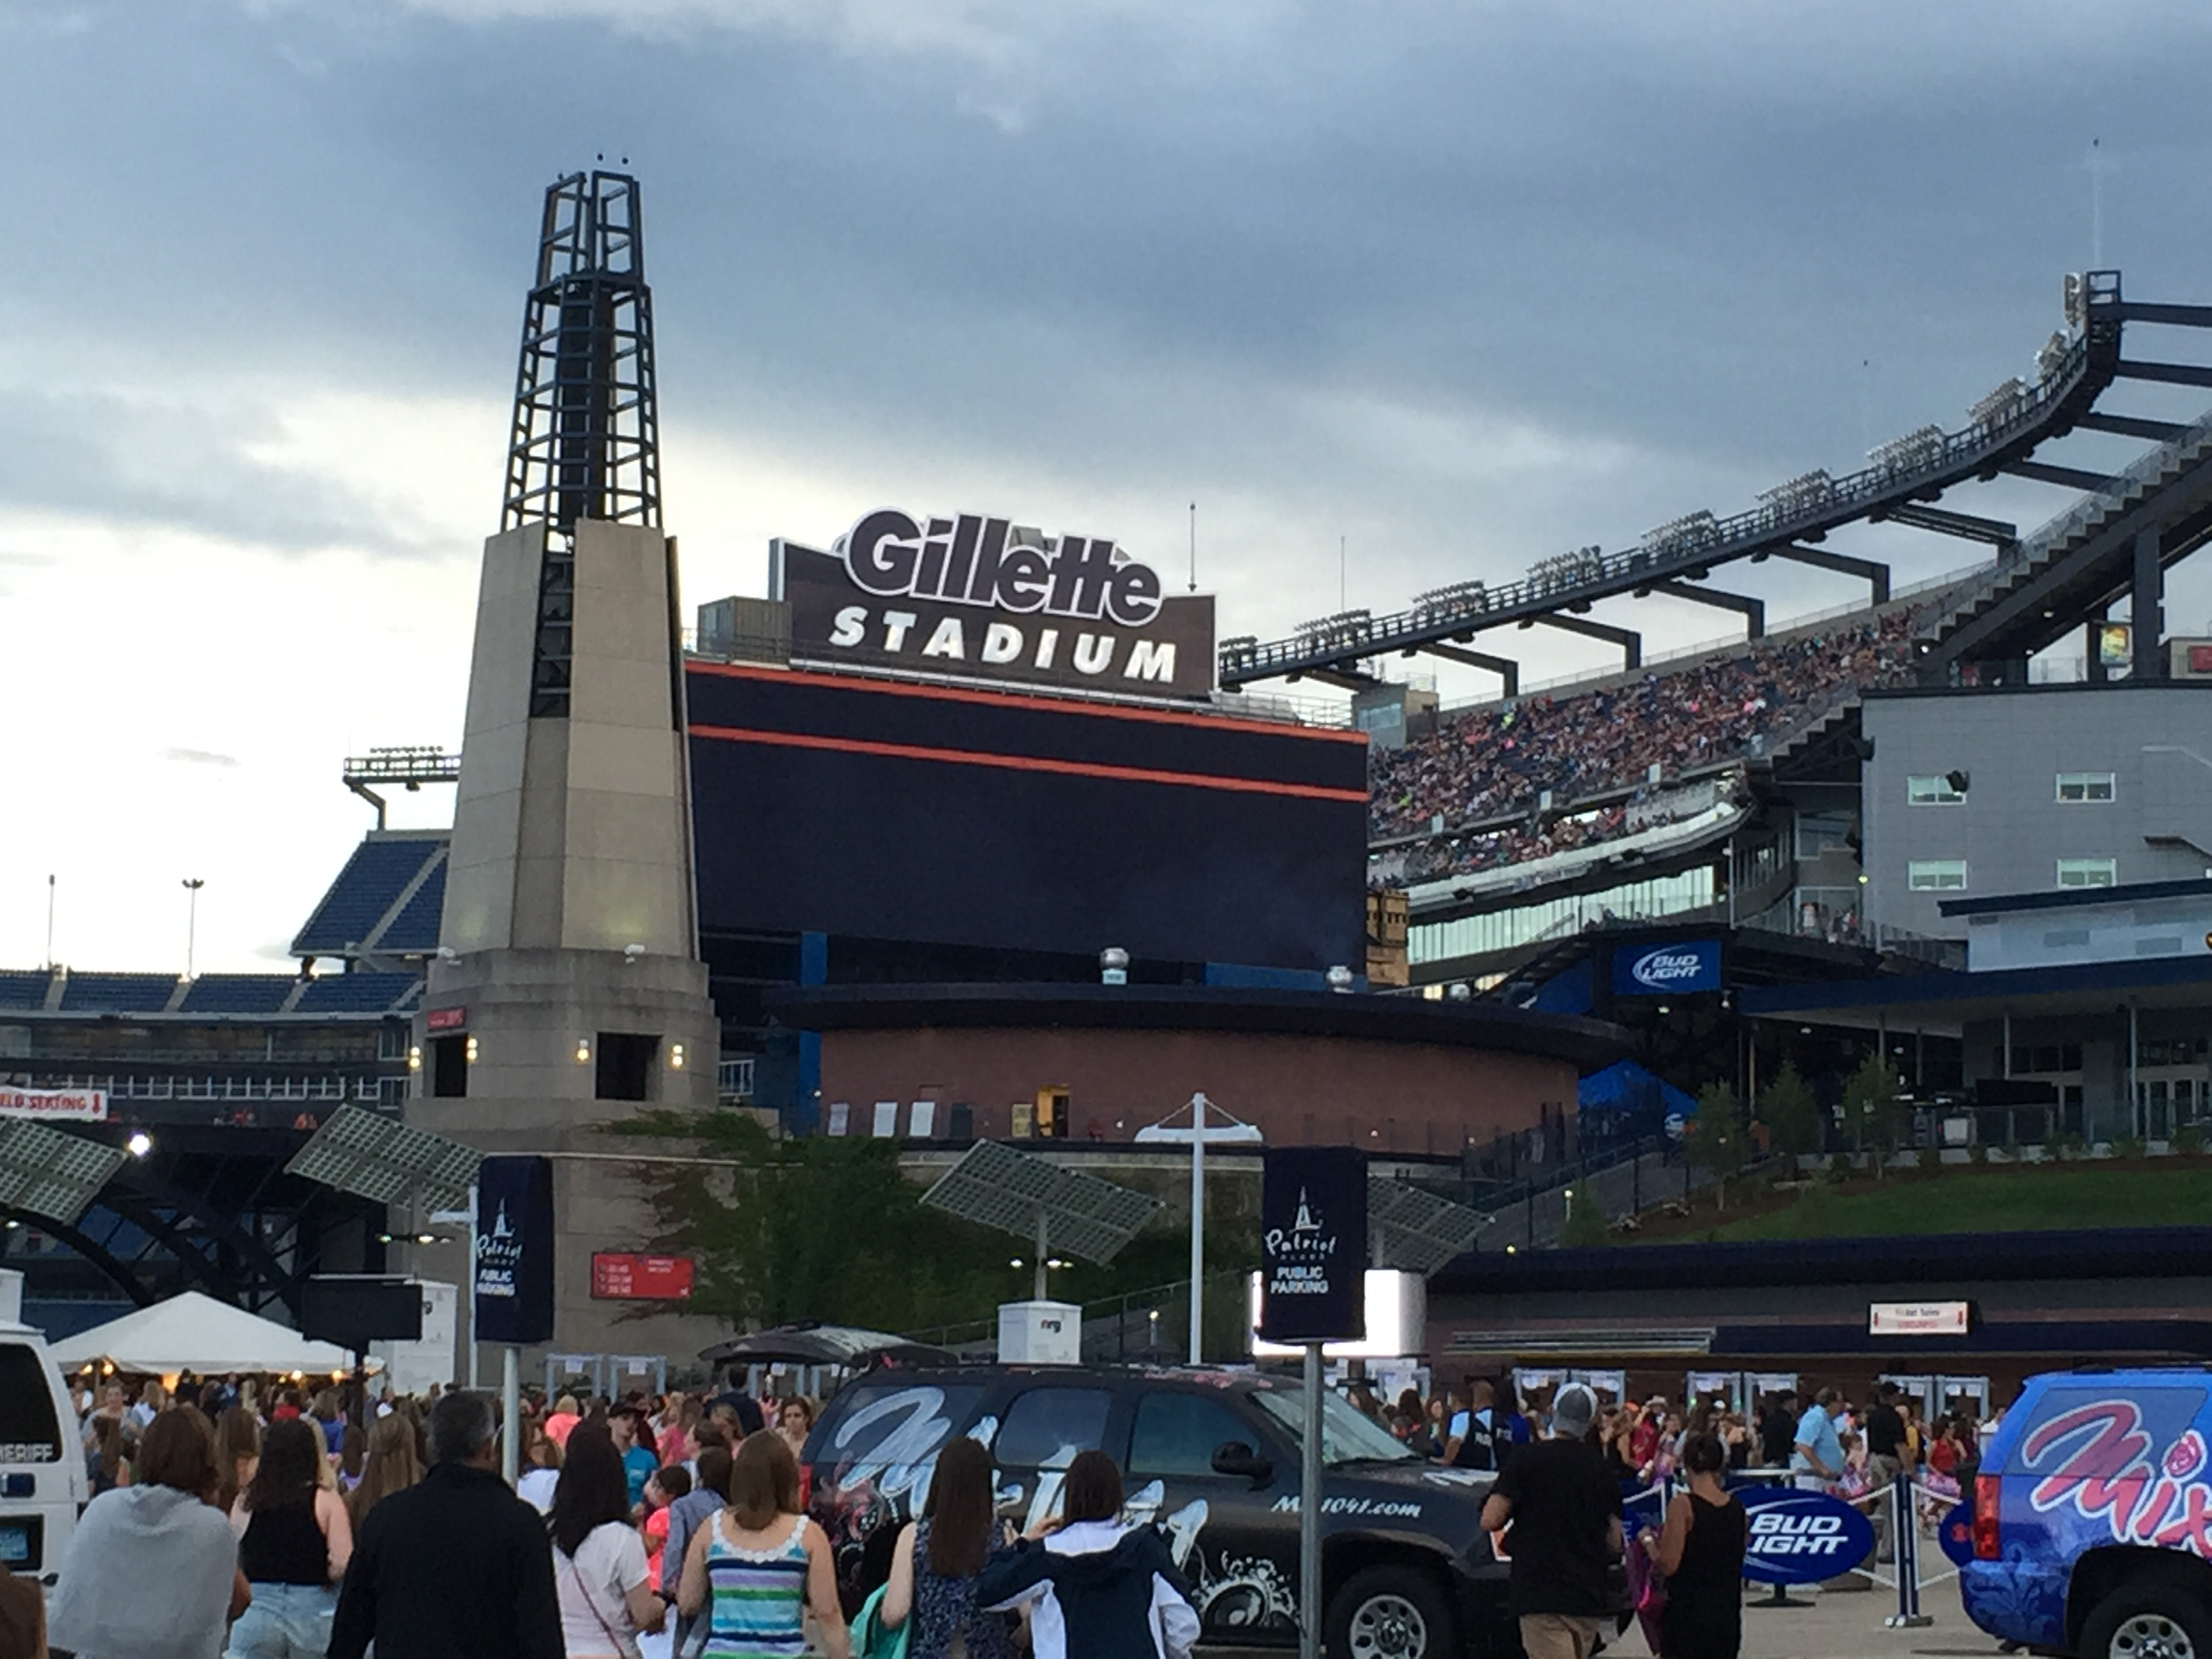 Arriving at Gillette Stadium.